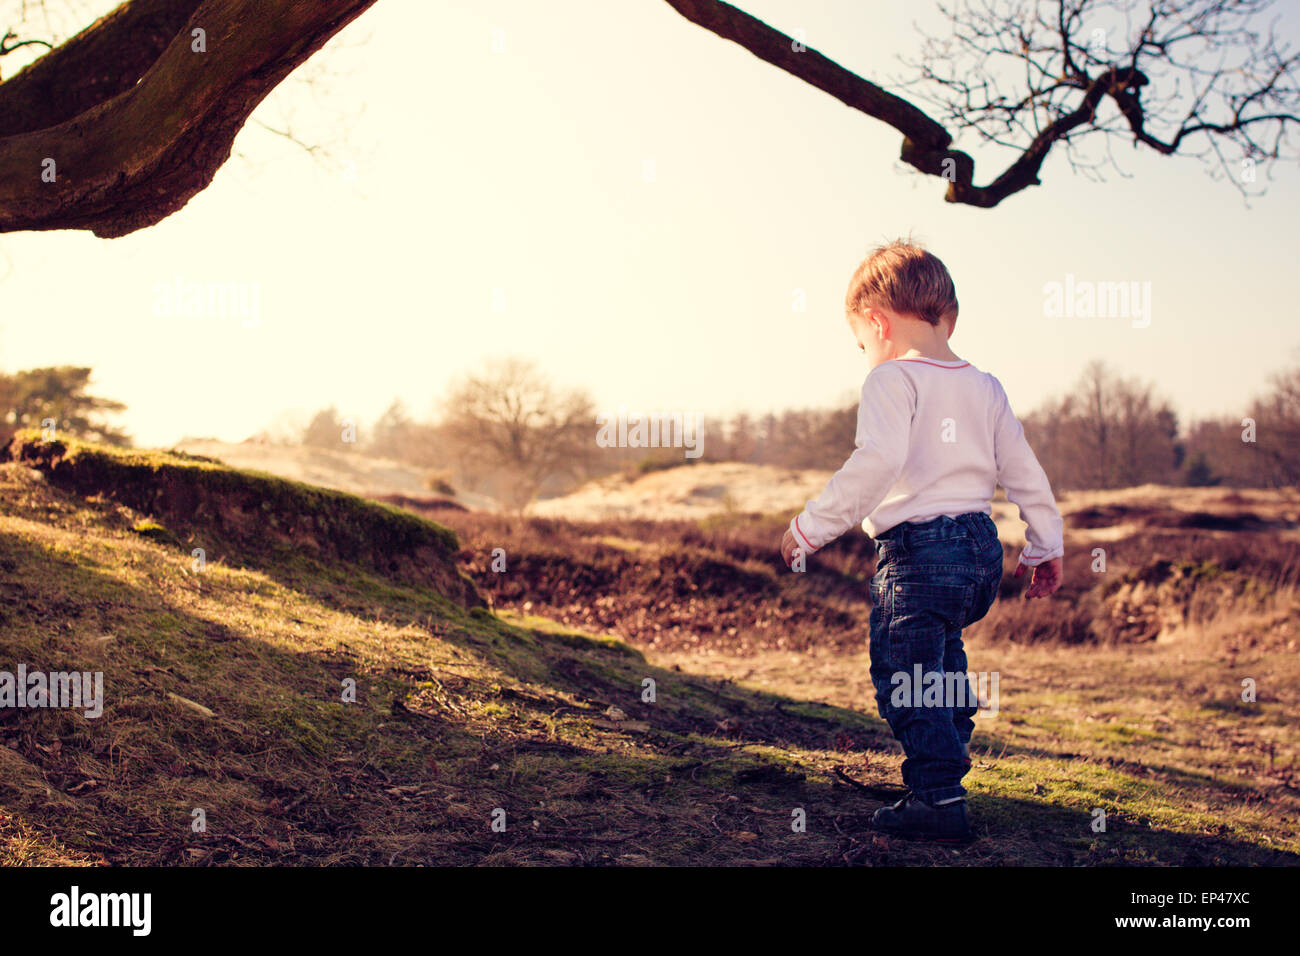 Toddler exploring the countryside Stock Photo